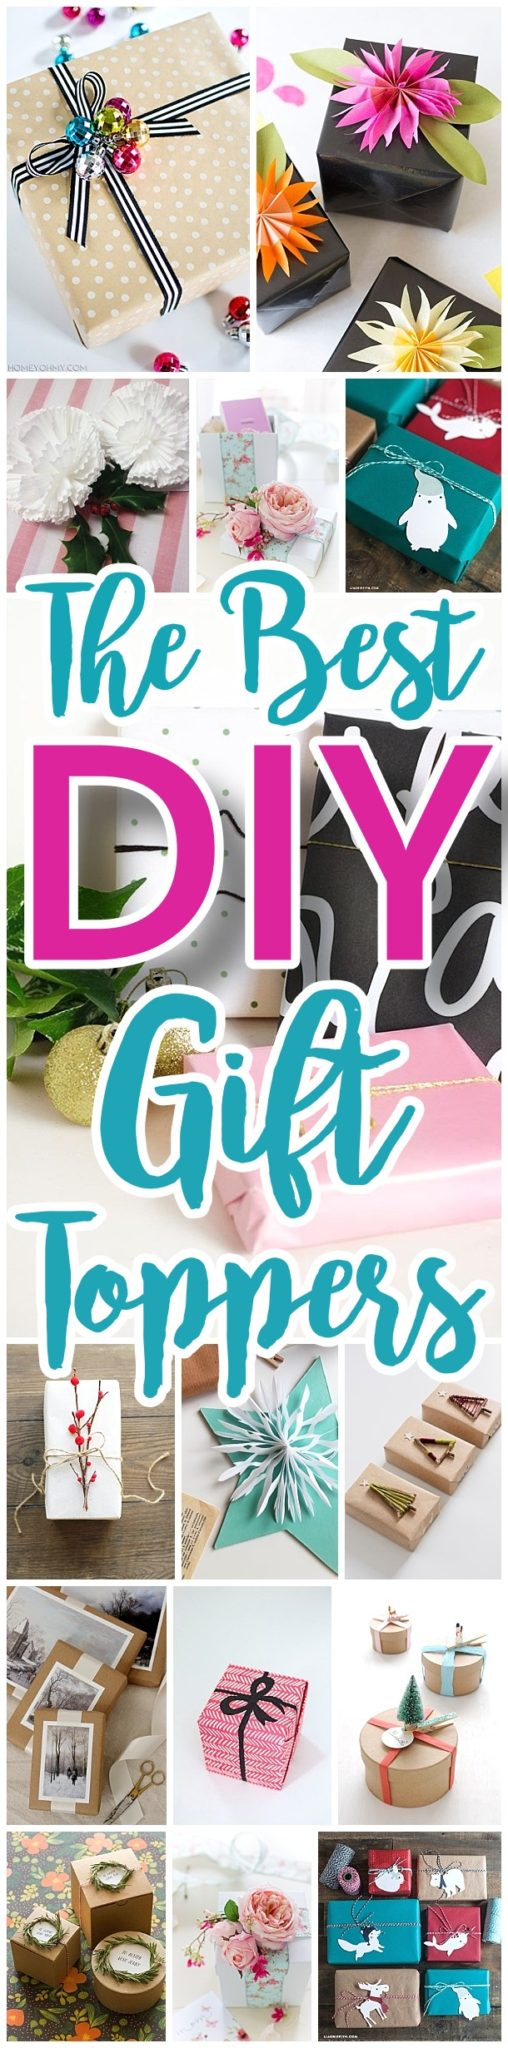 Do it Yourself Gift Toppers Tutorials - Fun, inexpensive and easy handmade ideas to wrap those gifts and give them a personal touch for Christmas Birthdays Holidays and more!